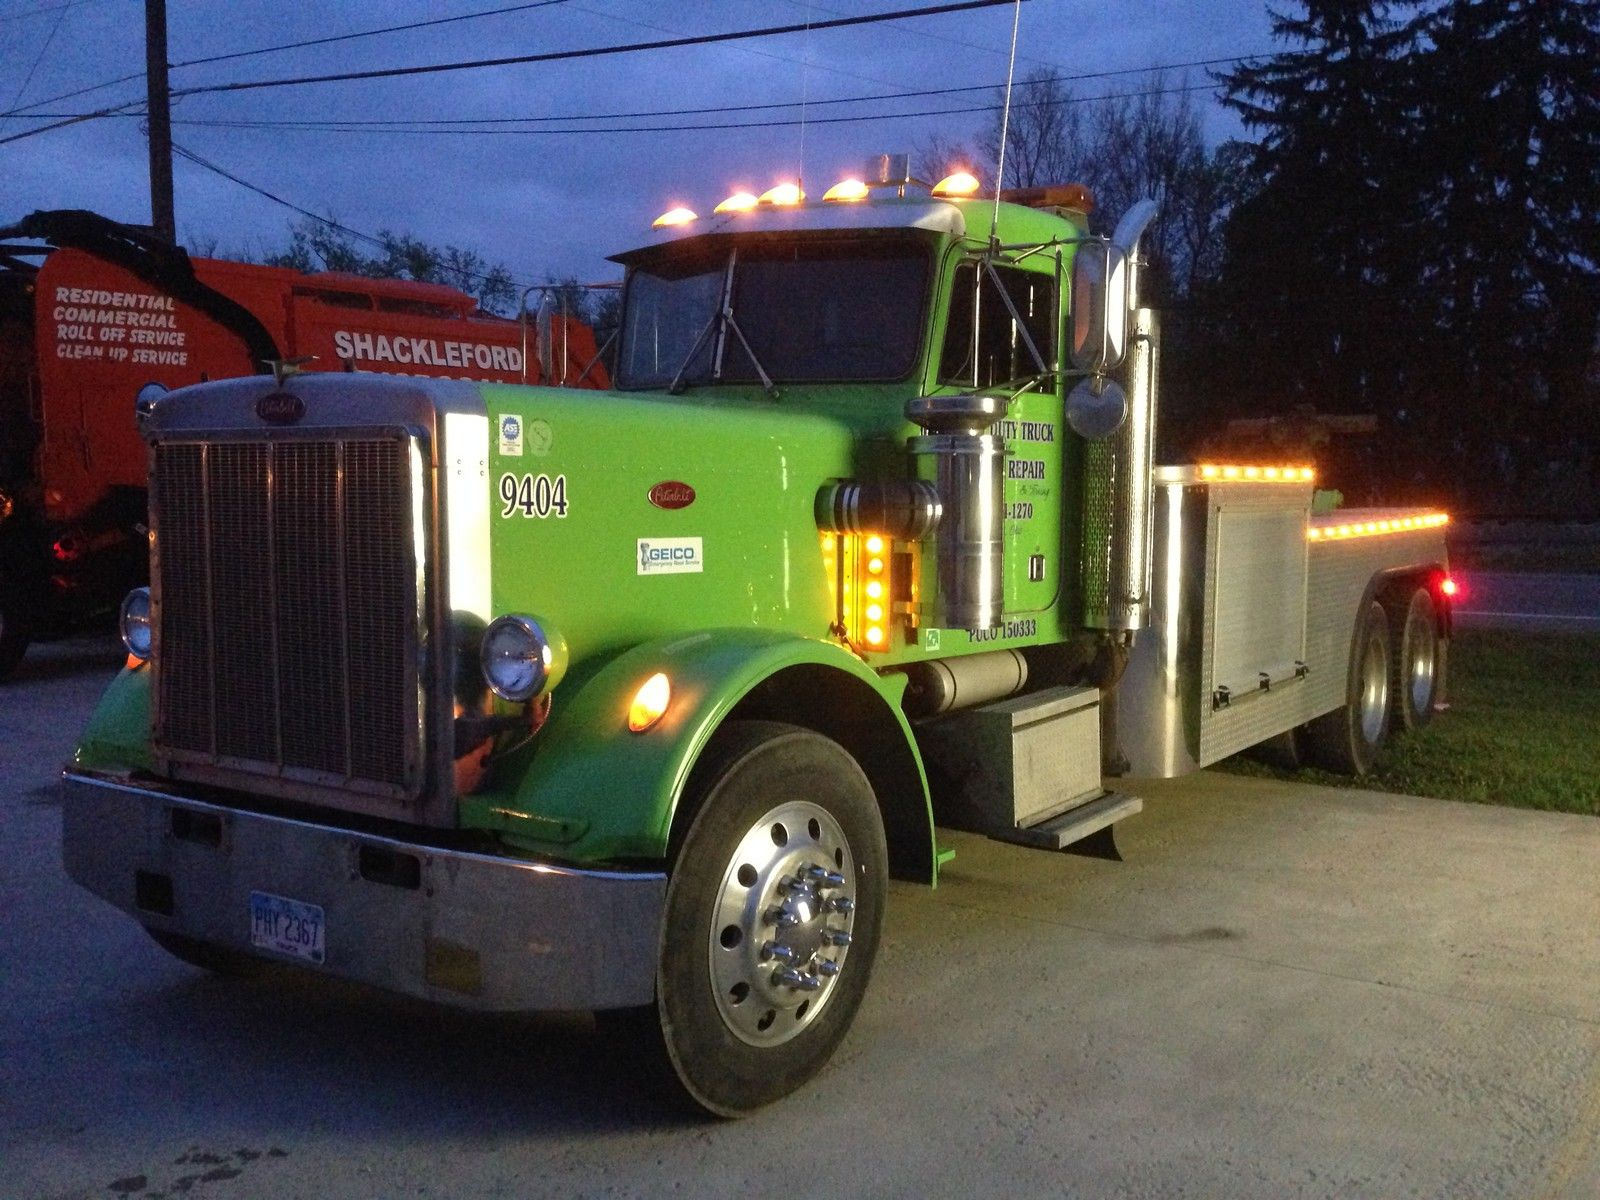 Wiring Diagram For 1984 Peterbilt 359. 1984 Peterbilt 359 Air ...